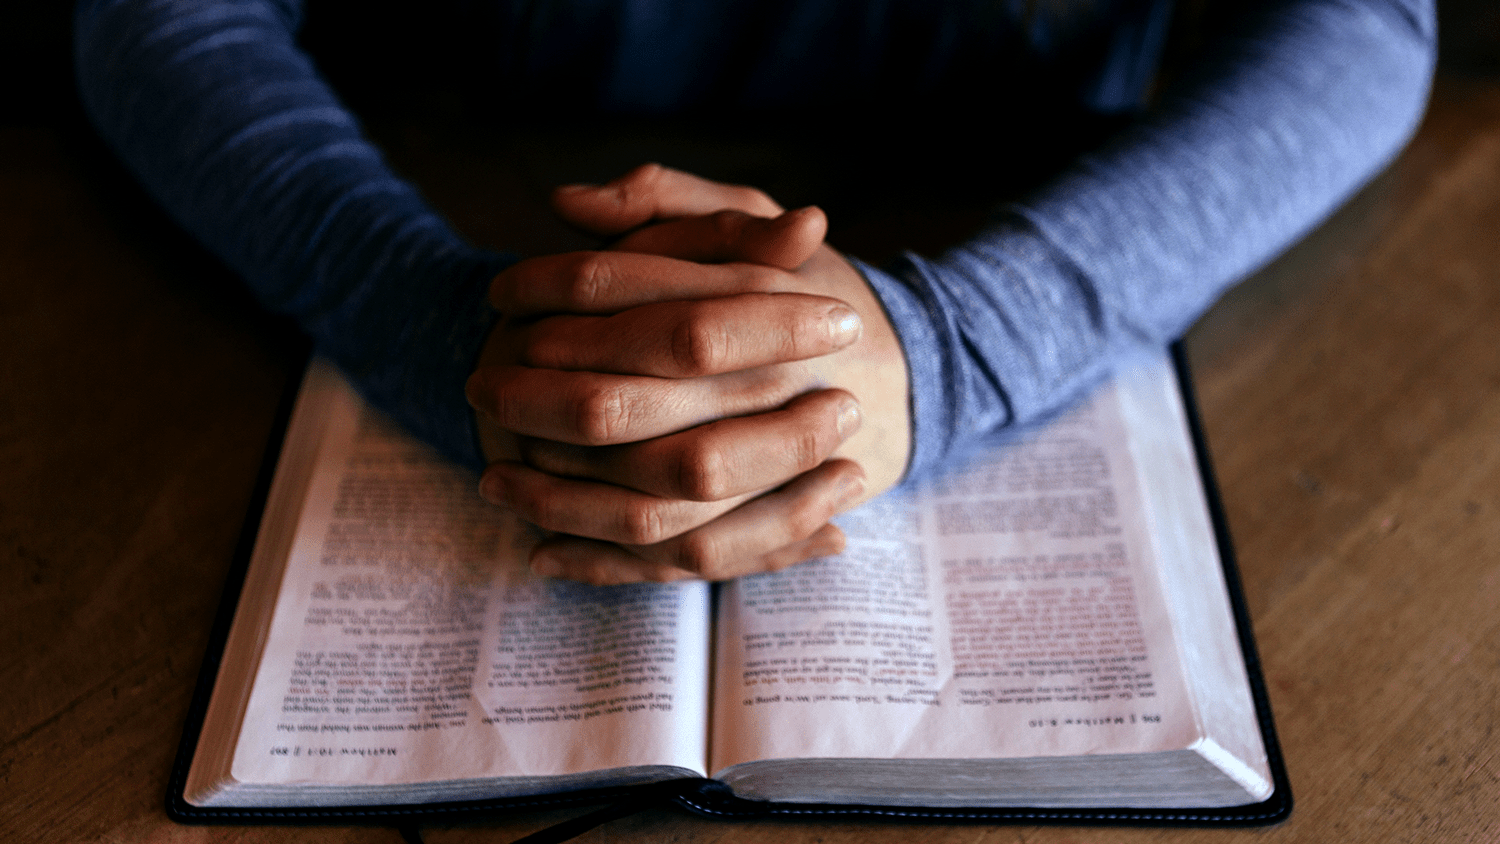 An image of someone at prayer with an open Bible.